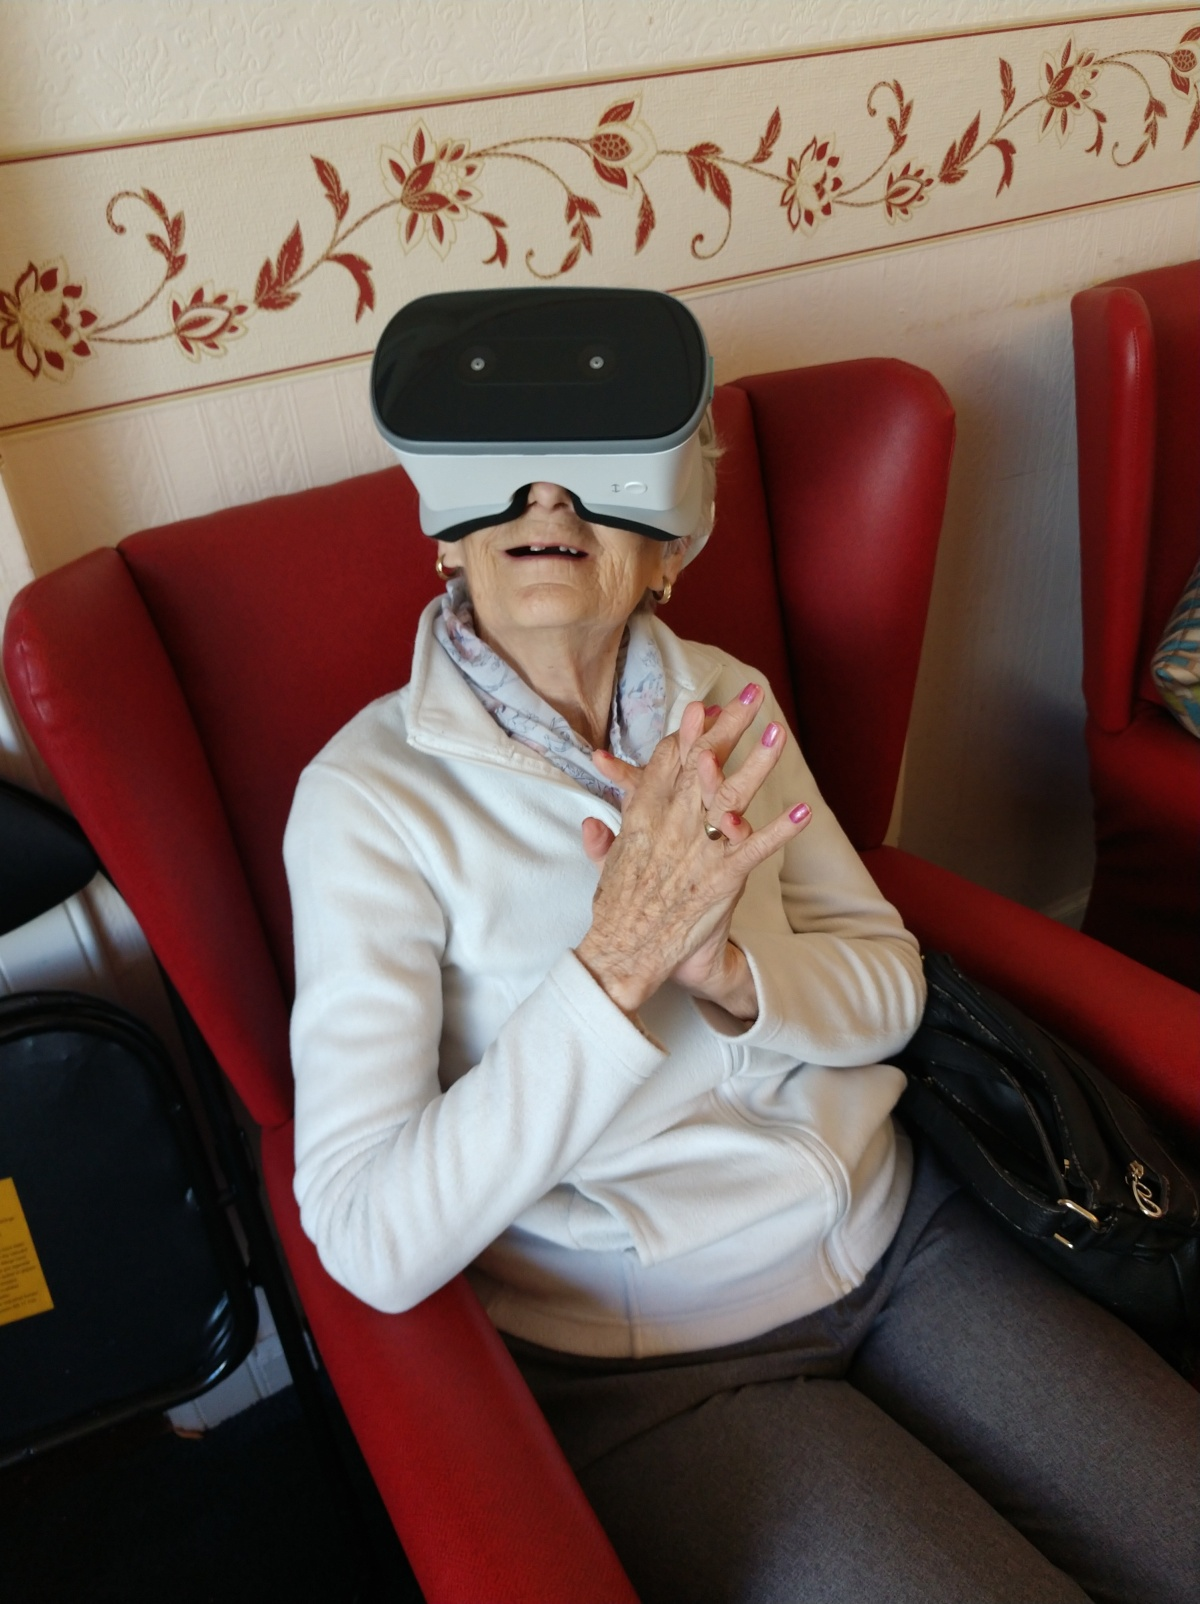 Phenomenal Results When Using Virtual Reality for Dementia